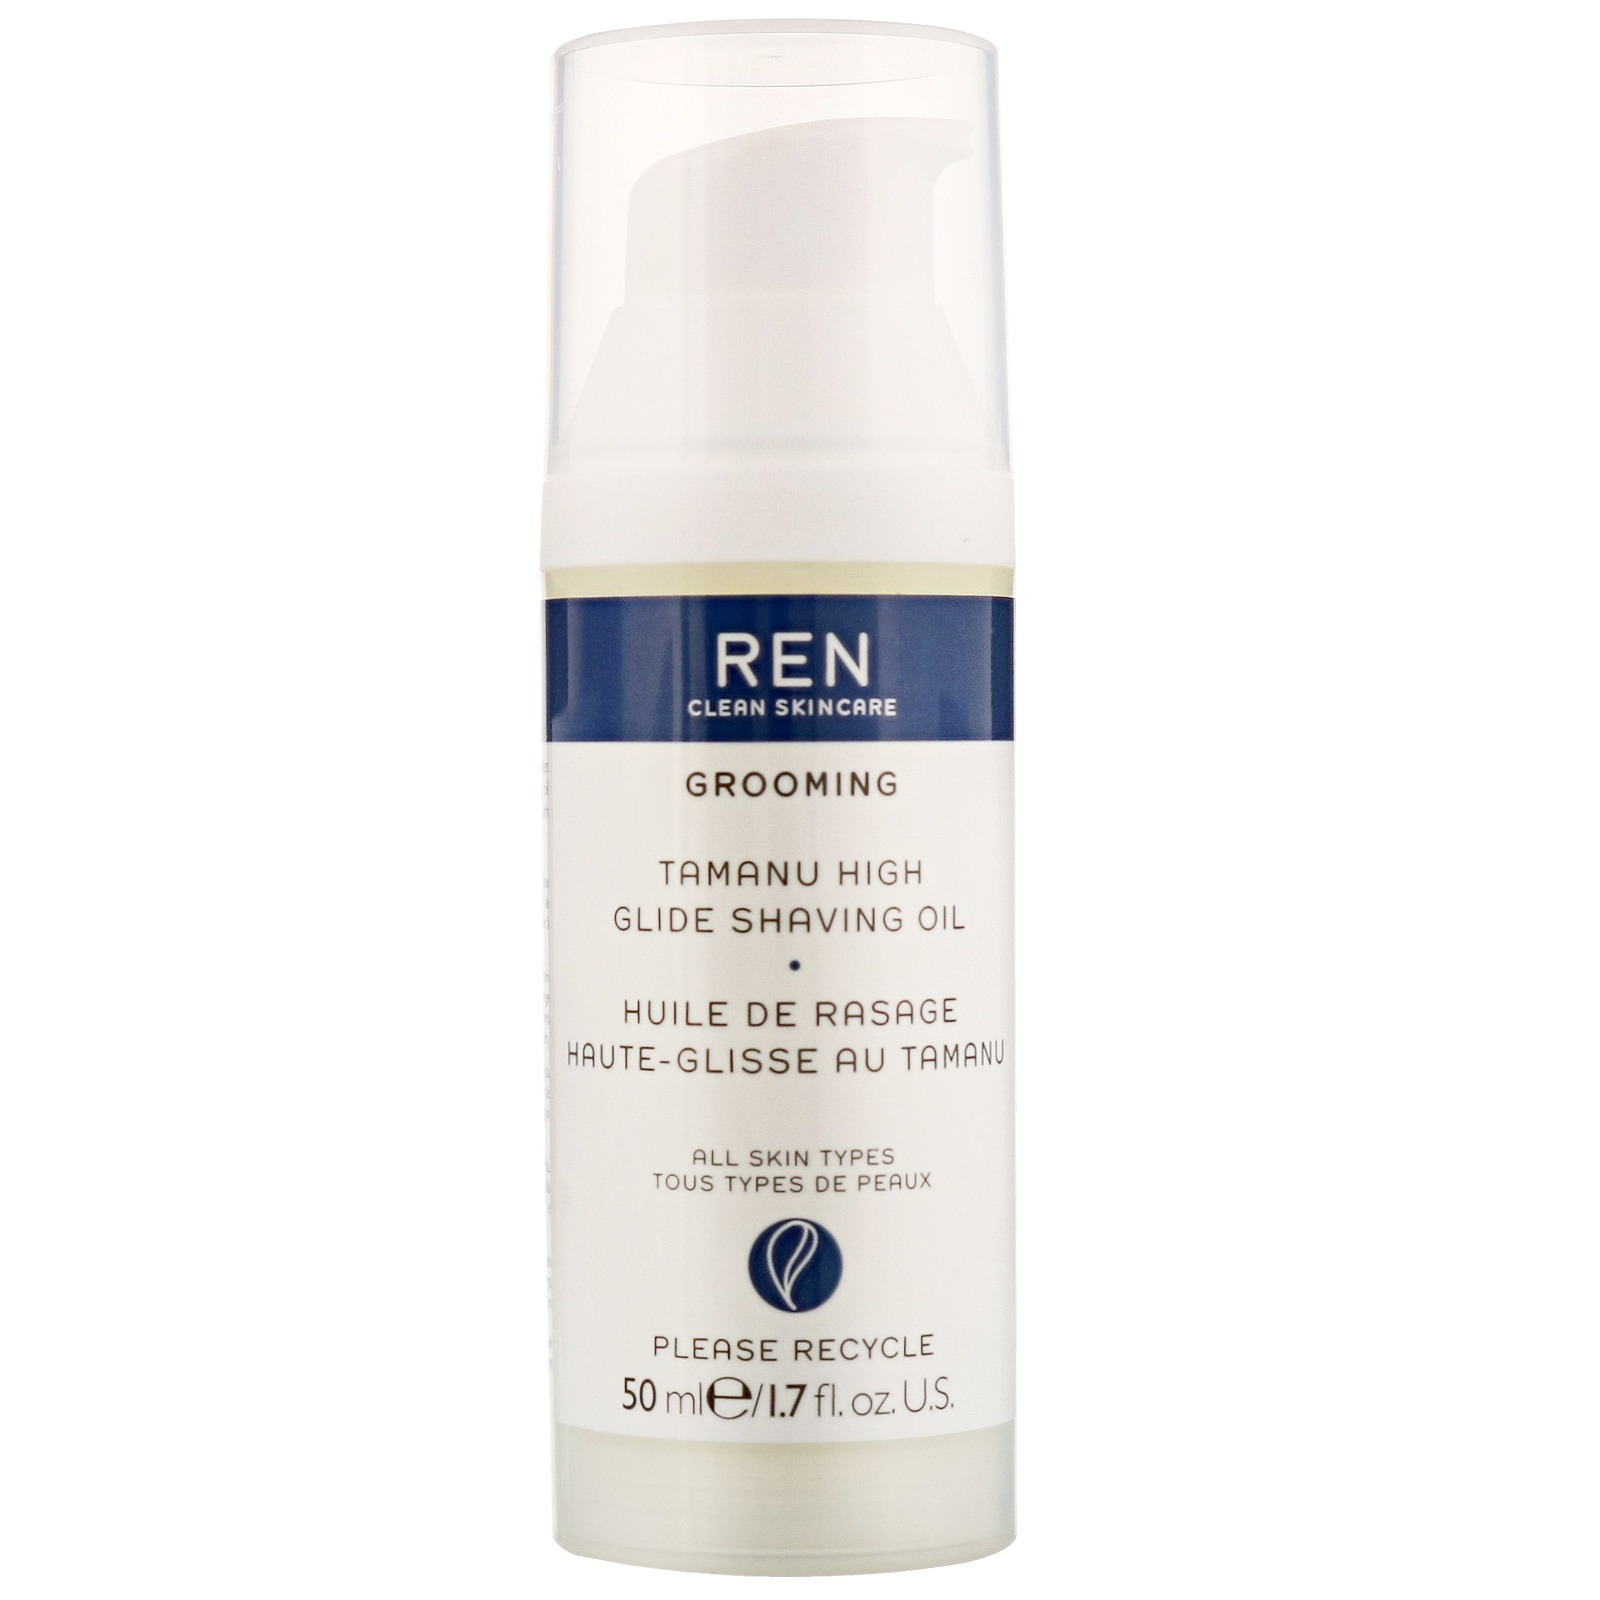 REN Clean Skincare Men Tamanu High Glide Shaving Oil 50ml / 1.7 fl.oz.